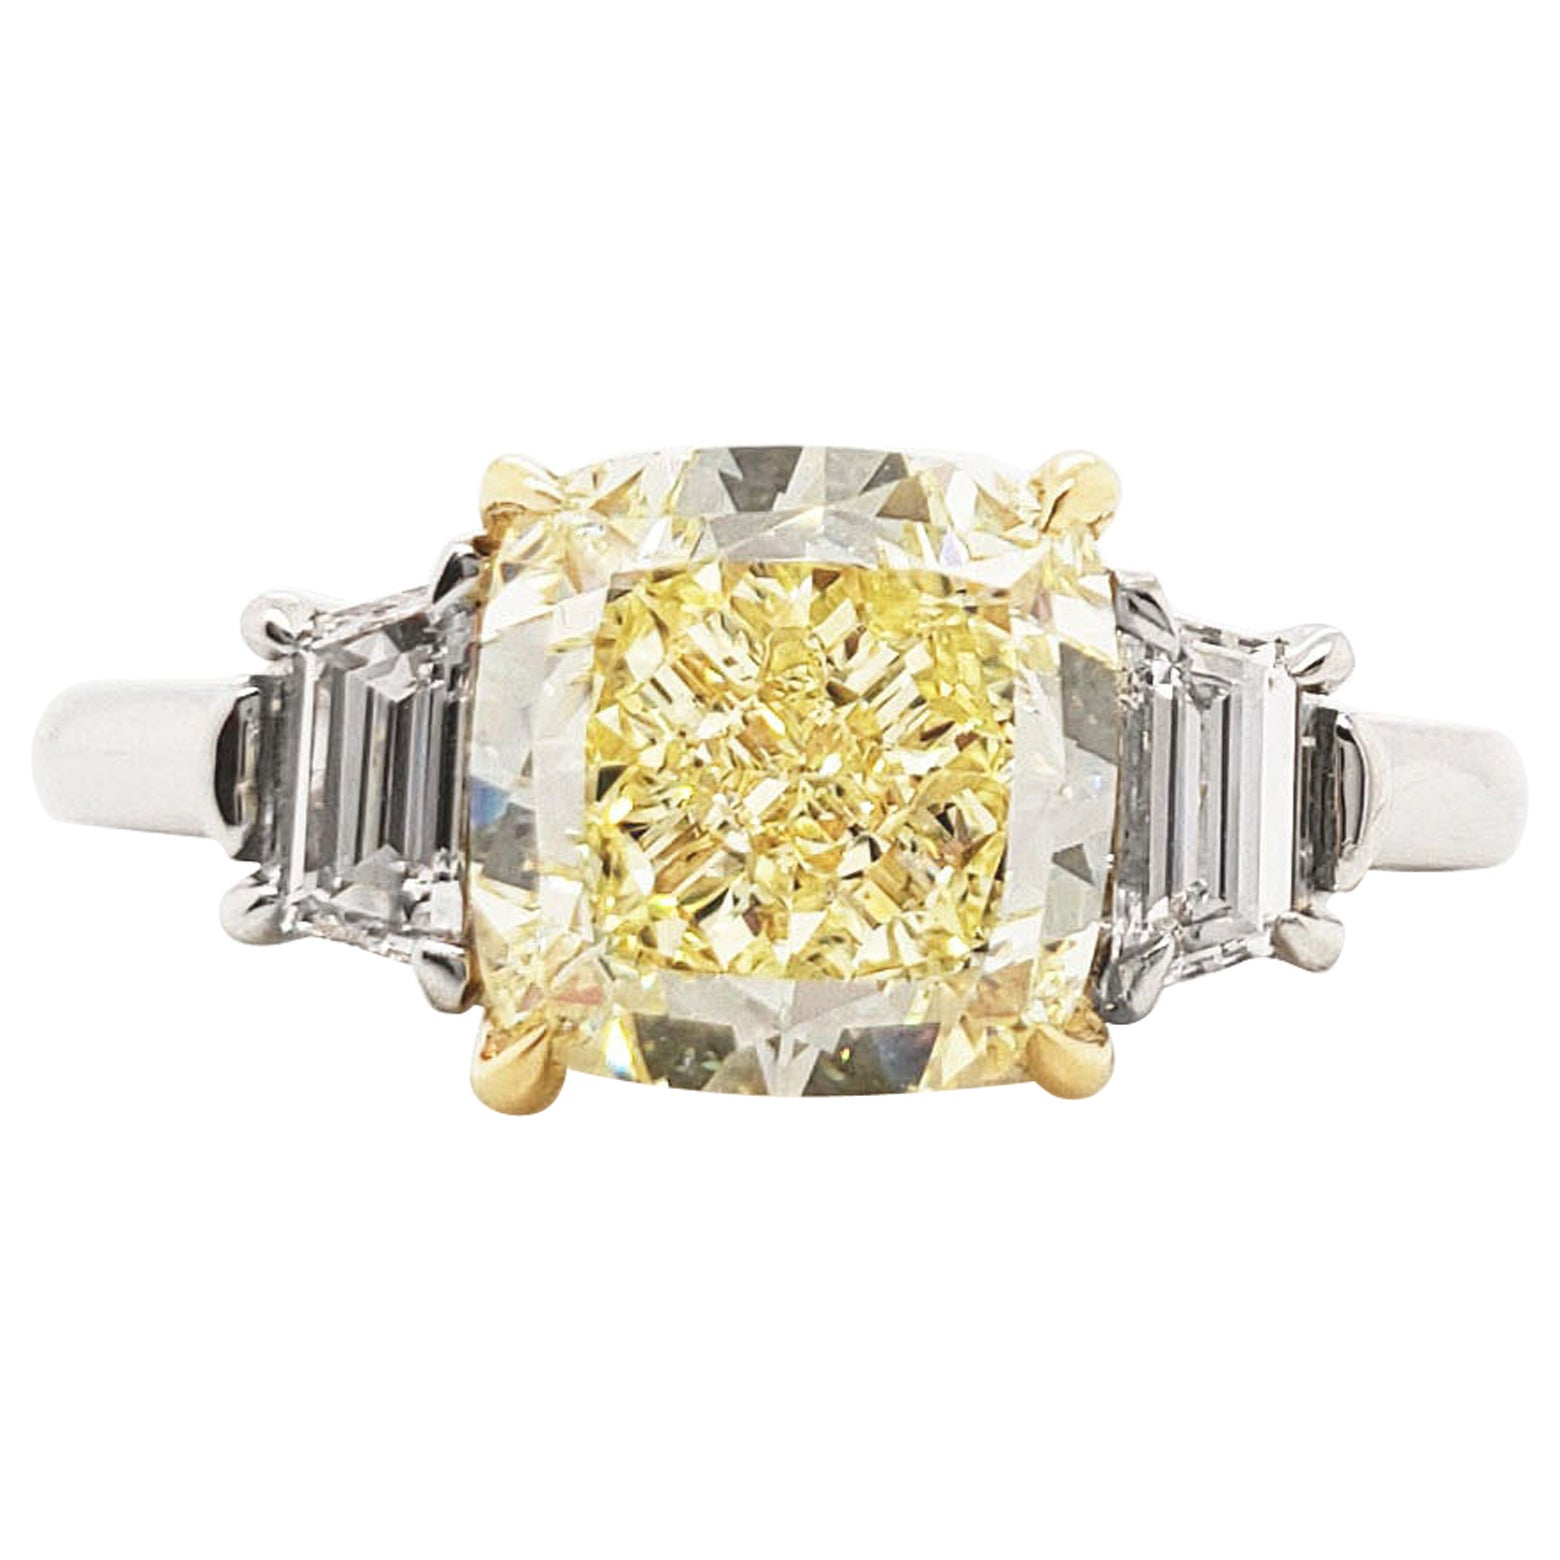 Scarselli 3 Carat Fancy Light Yellow VVS2 Diamond Engagement Ring, Platinum GIA